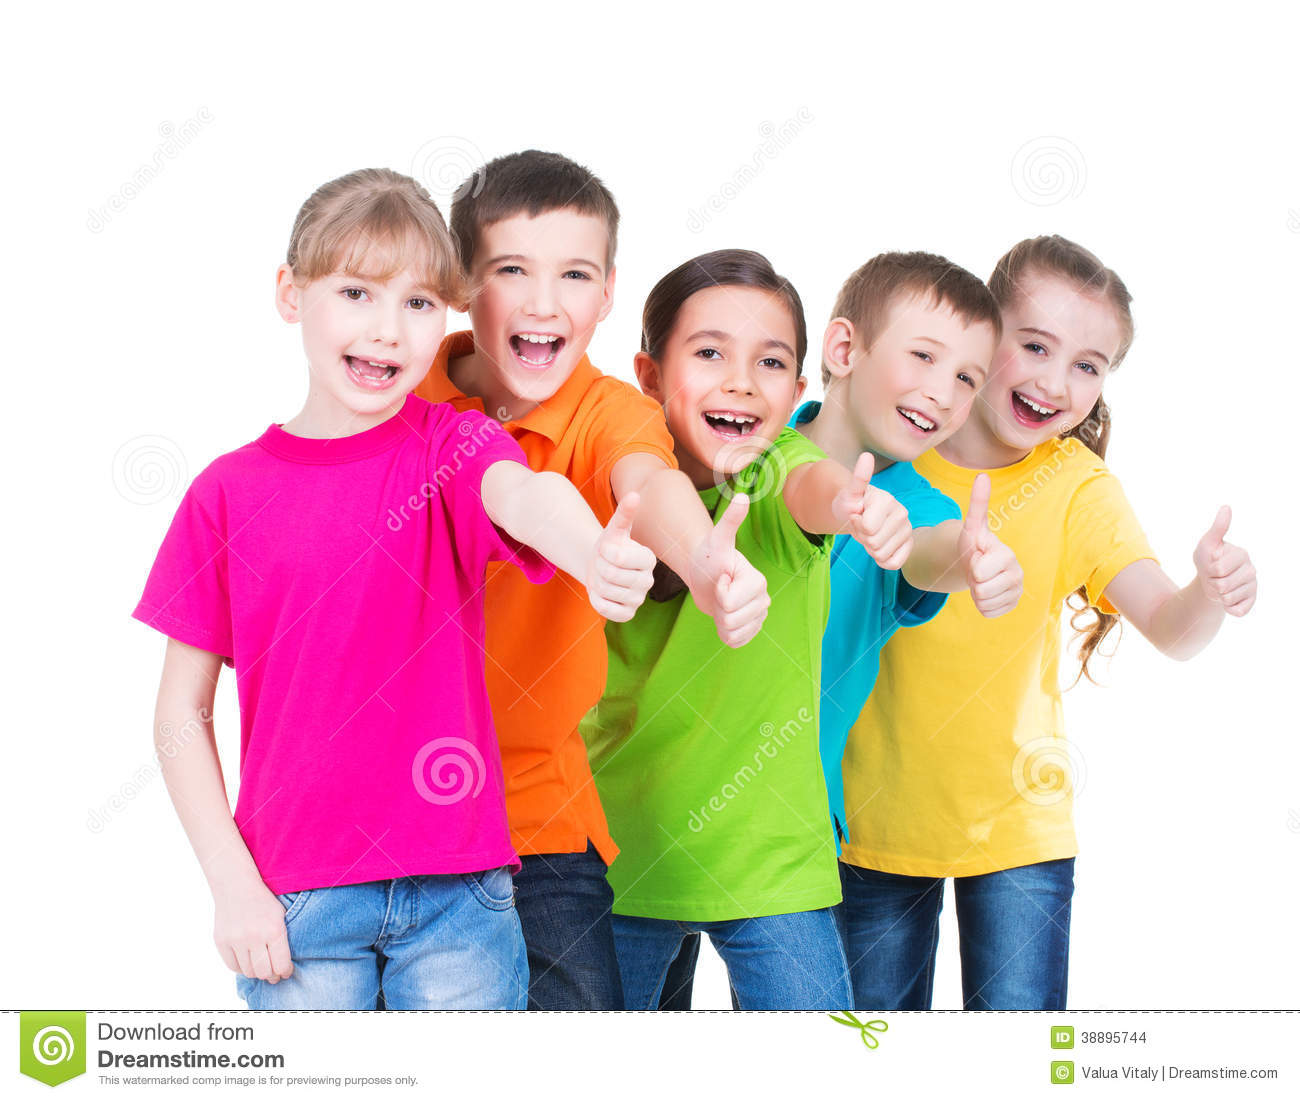 Happy kids with thumb up sign in colorful t shirts standing together